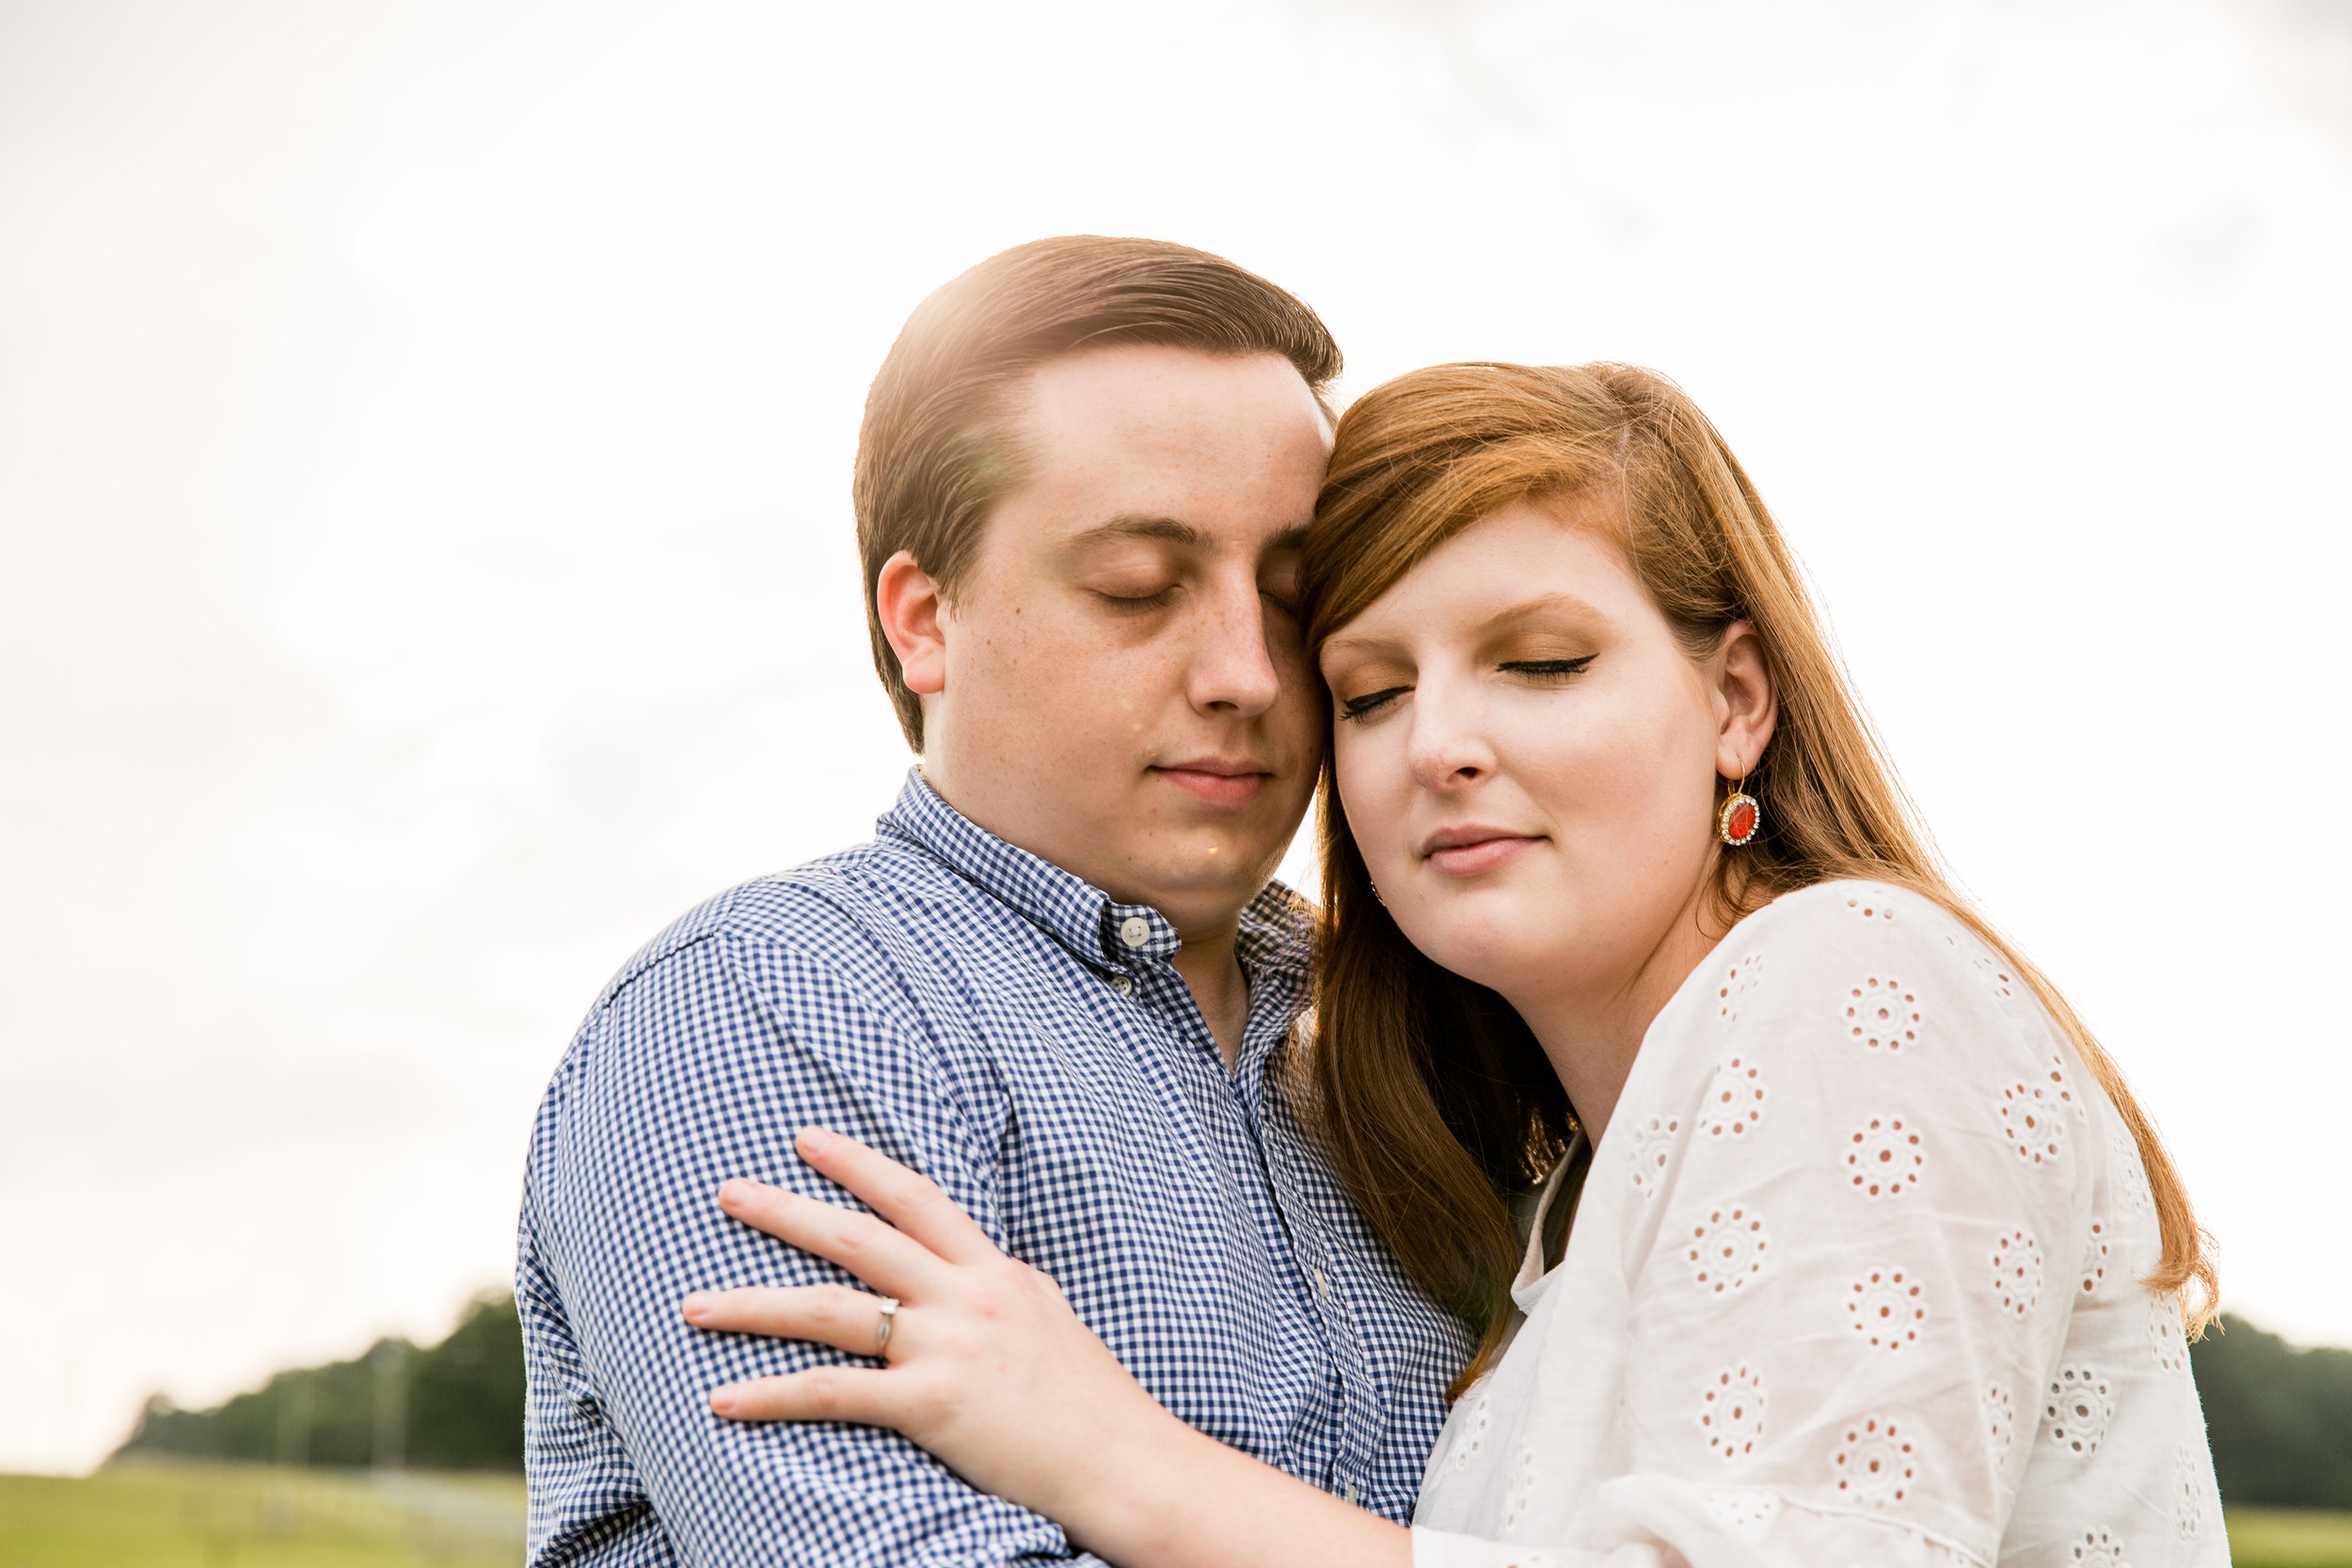 Hannah_Jacob_Engagement-7143.jpg